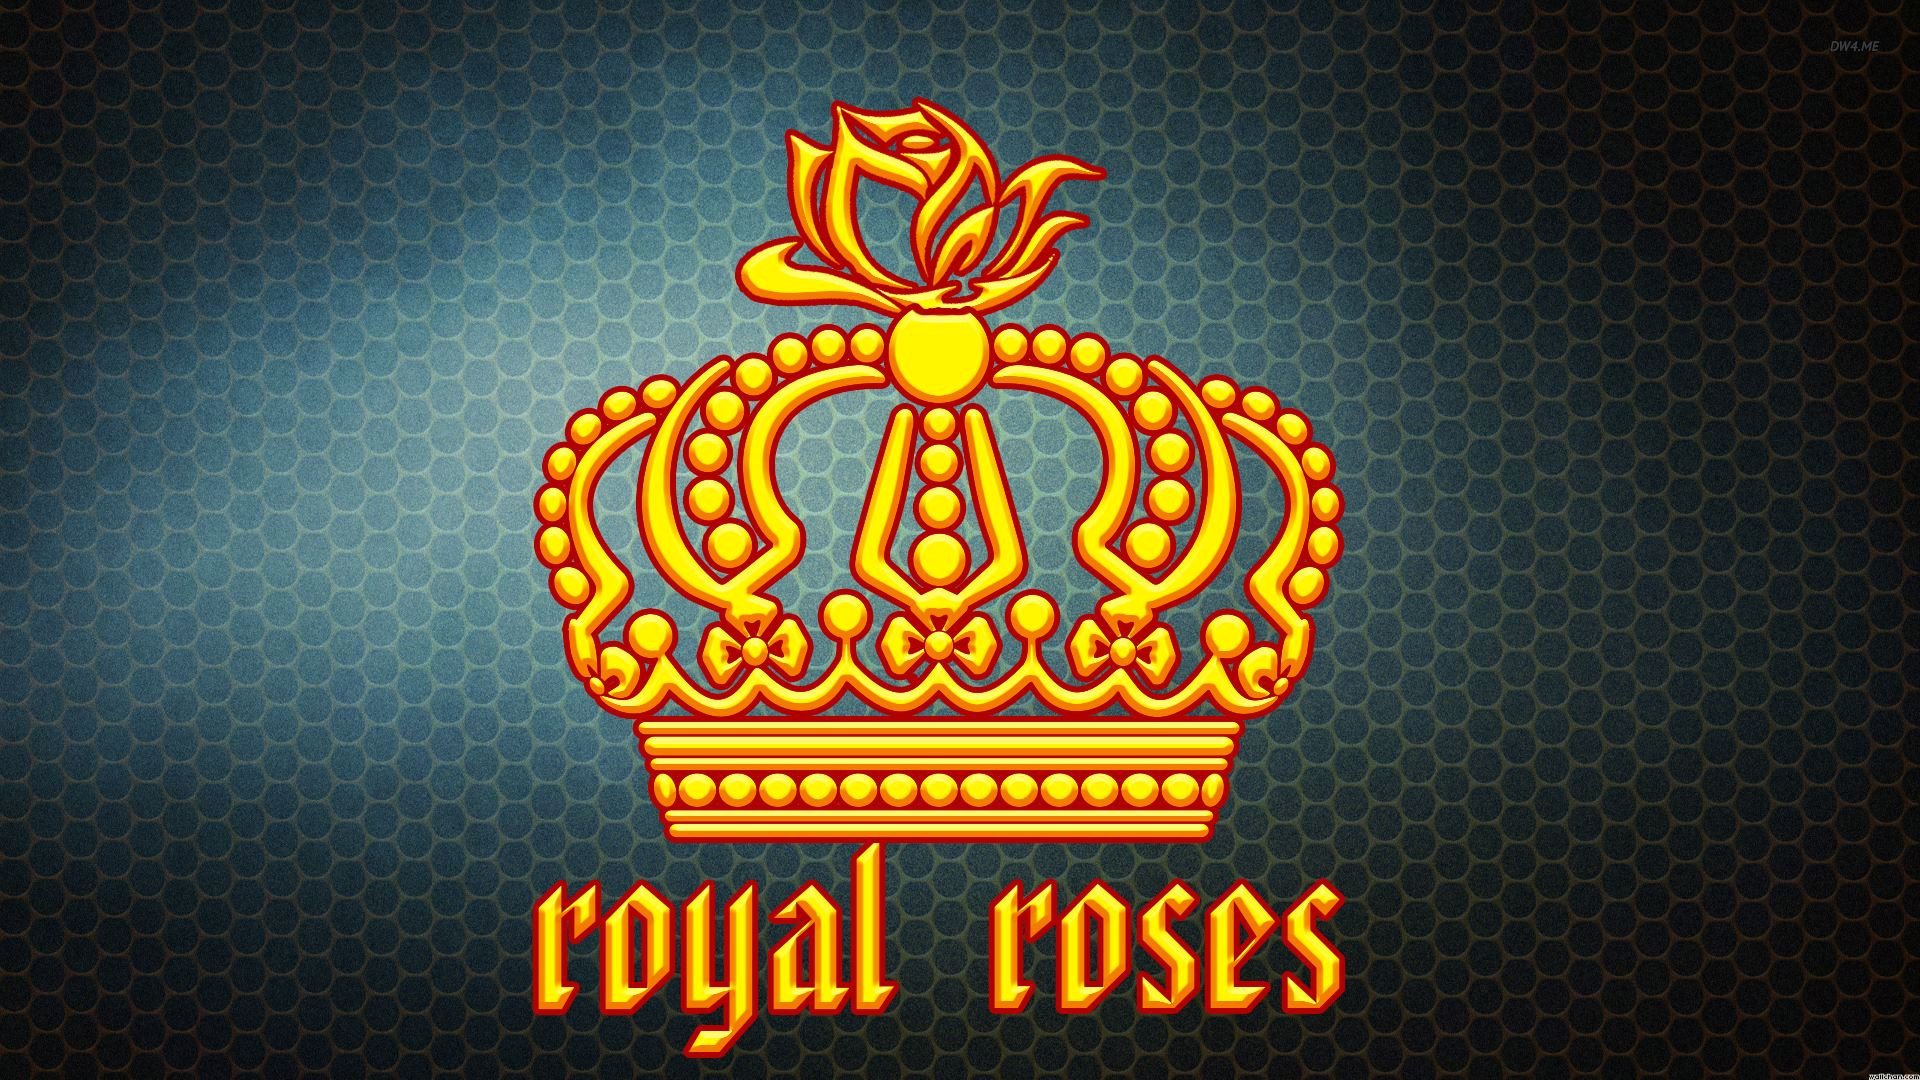 Contacts | Royal Roses Vainglory Guild